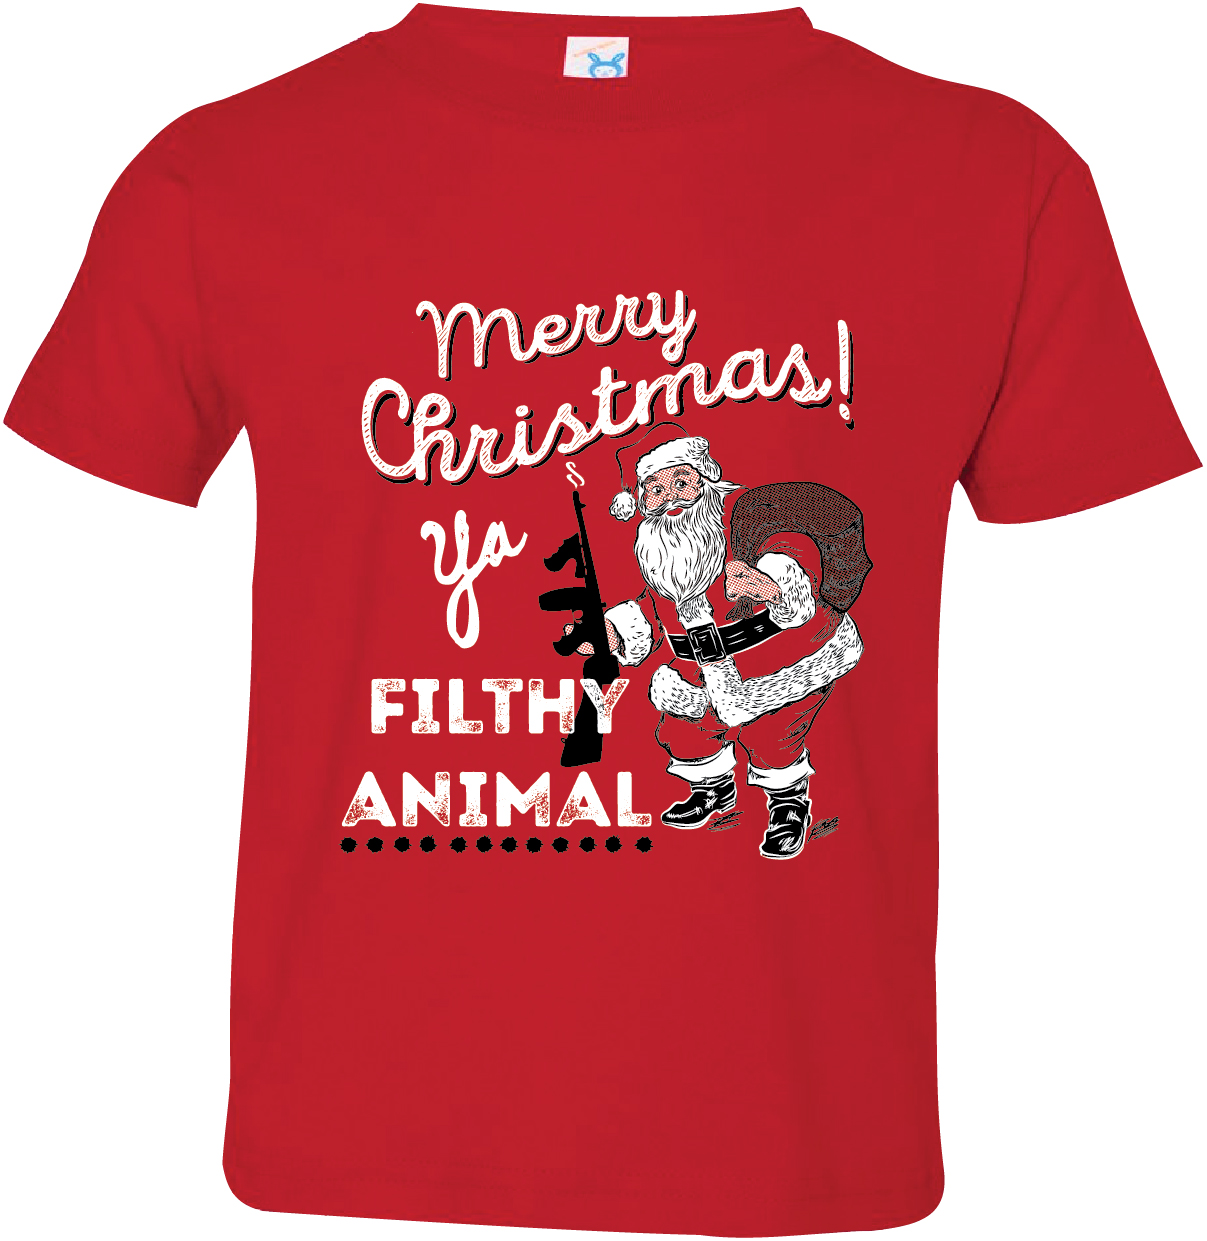 Texas Tees Brand: Merry Christmas ya Filthy Animal, Funny Baby Clothes, Red 12-18 mo